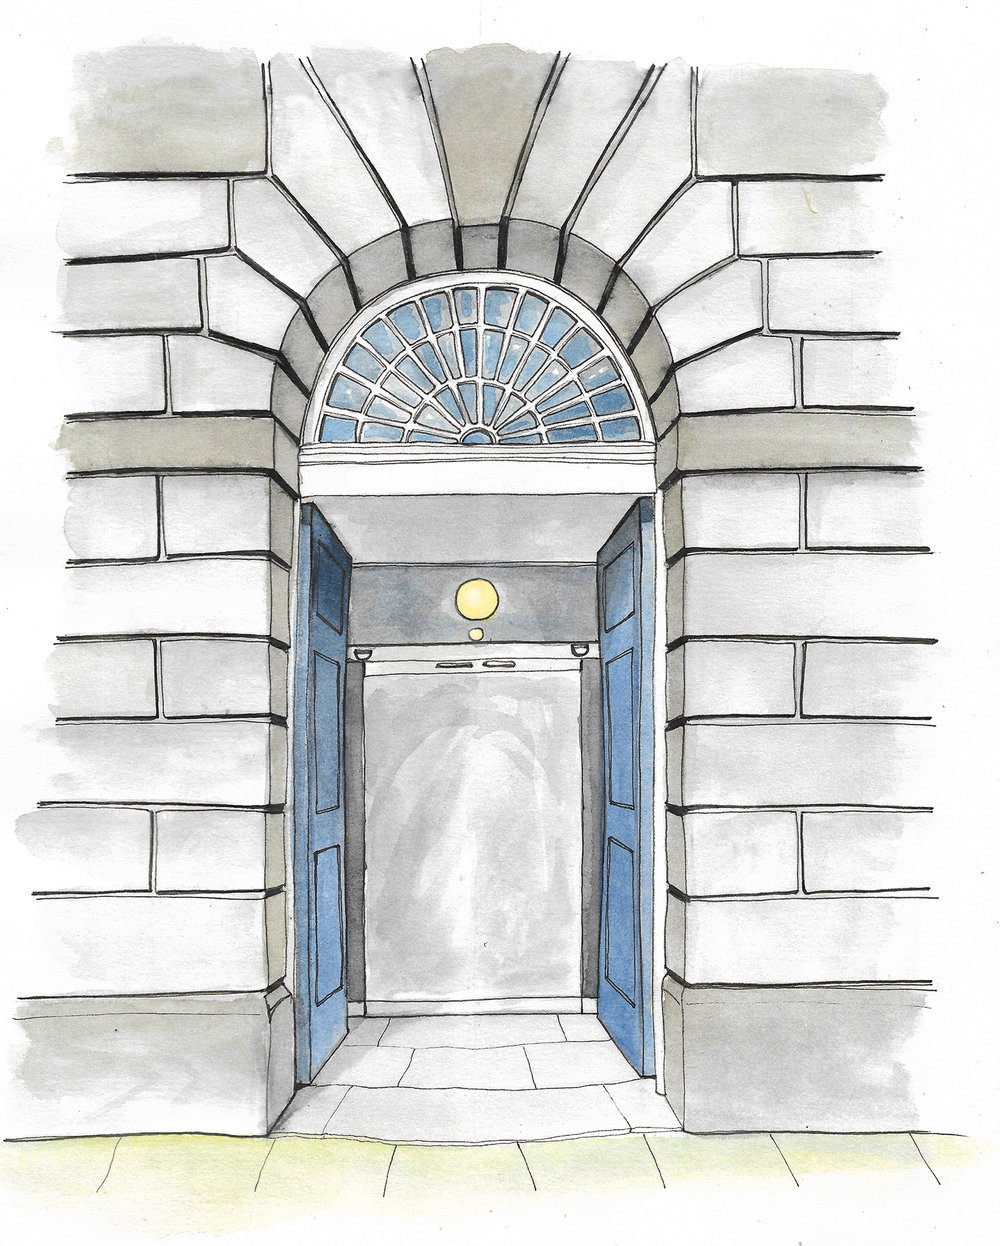 Client: Shire Hall Courthouse & Museum  Brief: Illustrate the entrance to make a gatefold card for the launch invitation